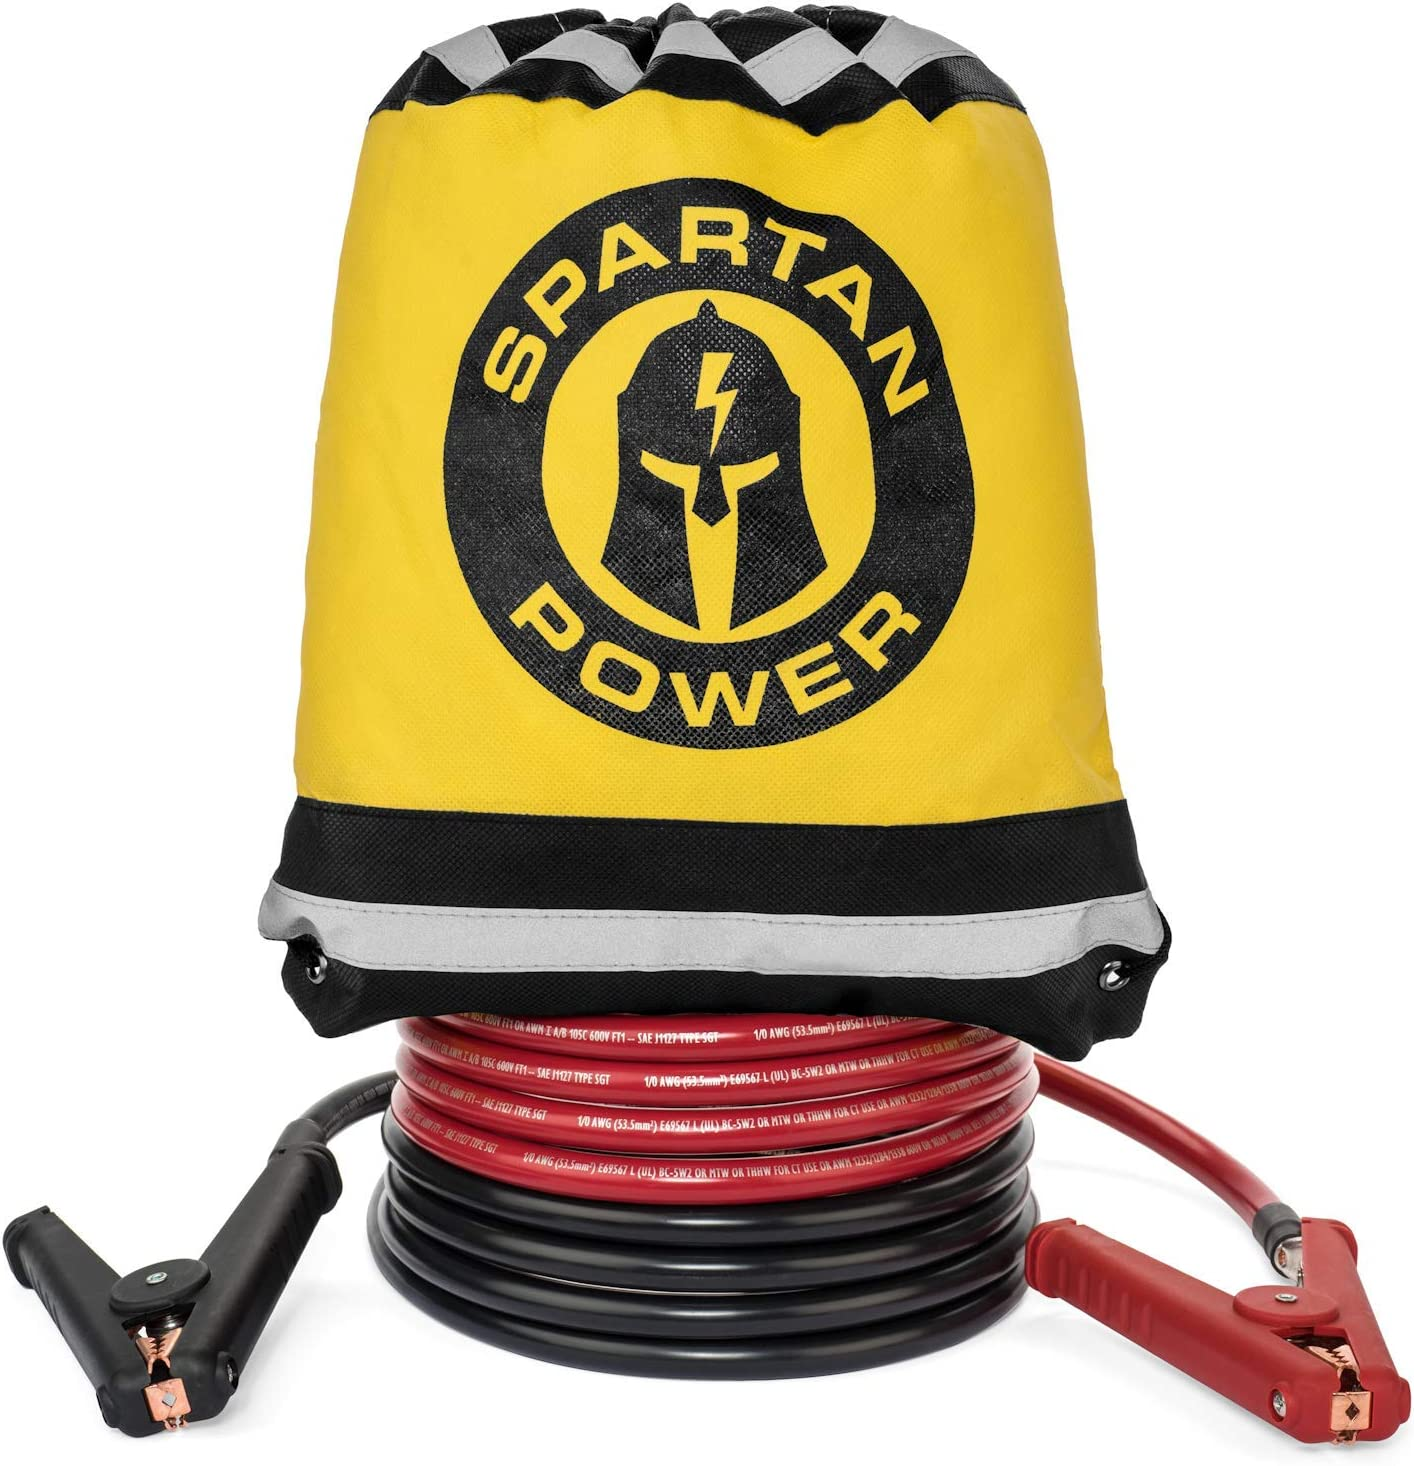 20 Foot 4 AWG Gauge Heavy Duty Jumper Cables Booster Set by Spartan Power 4 AWG 15 Foot Made in the USA